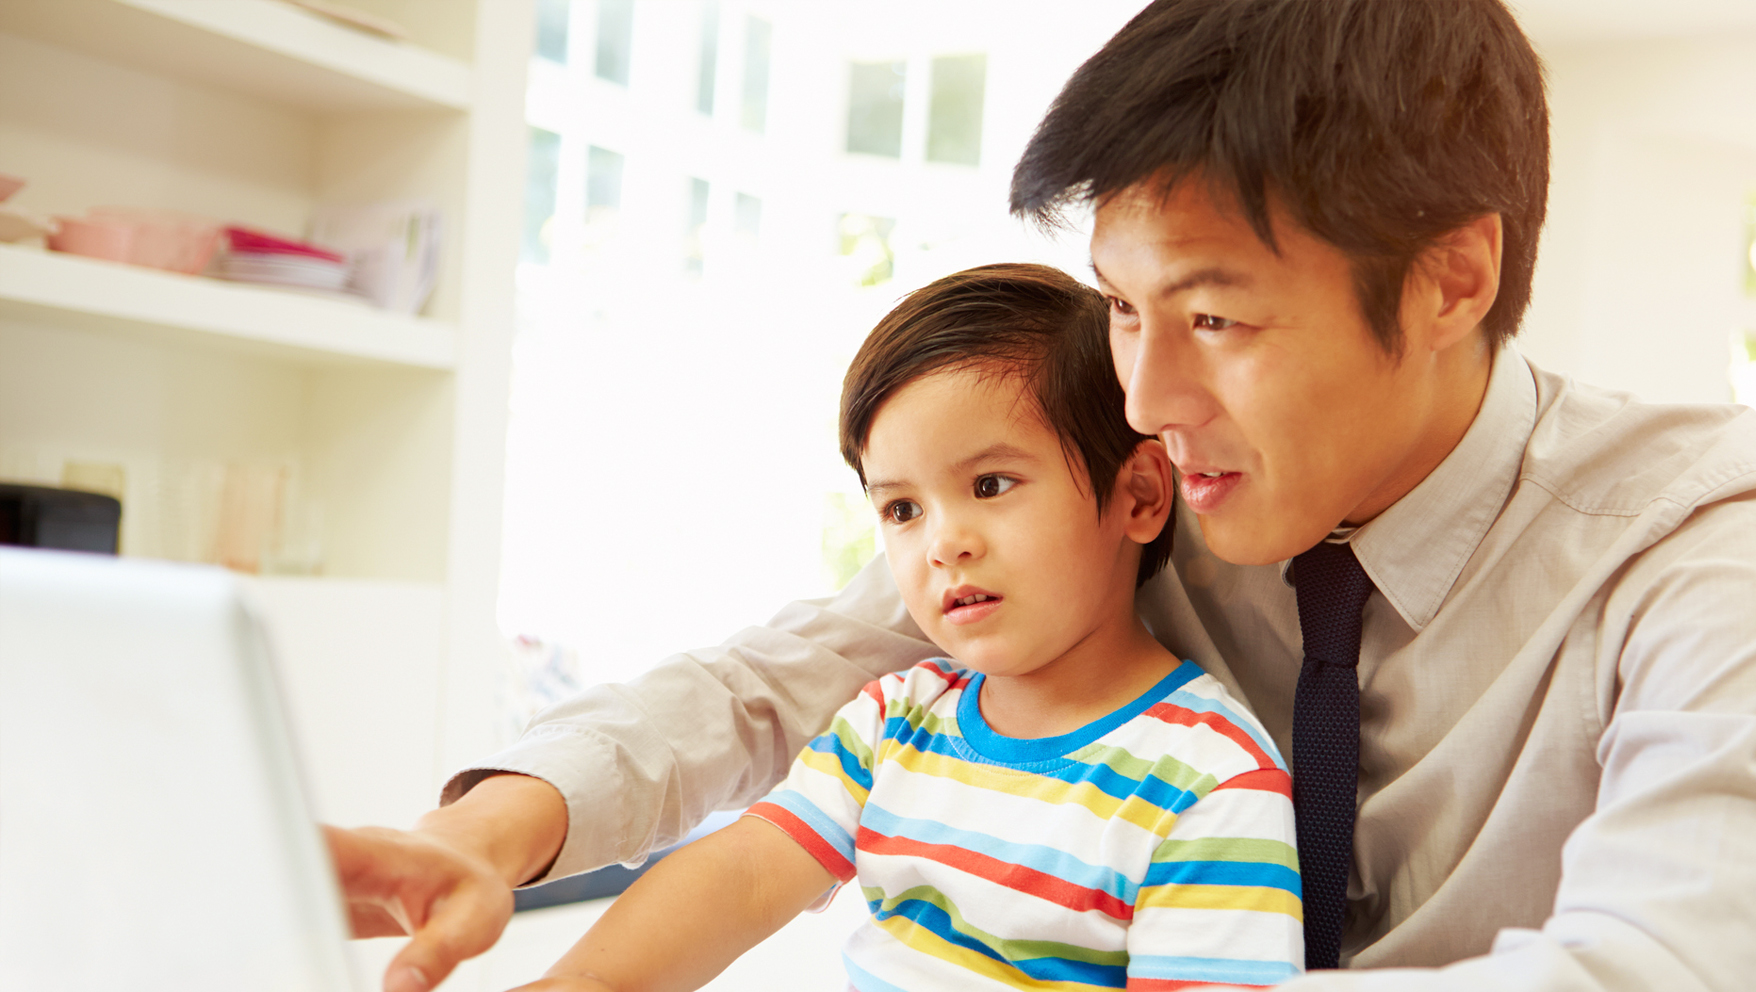 4 Tips for Helping Busy Dads Connect with Their Kids